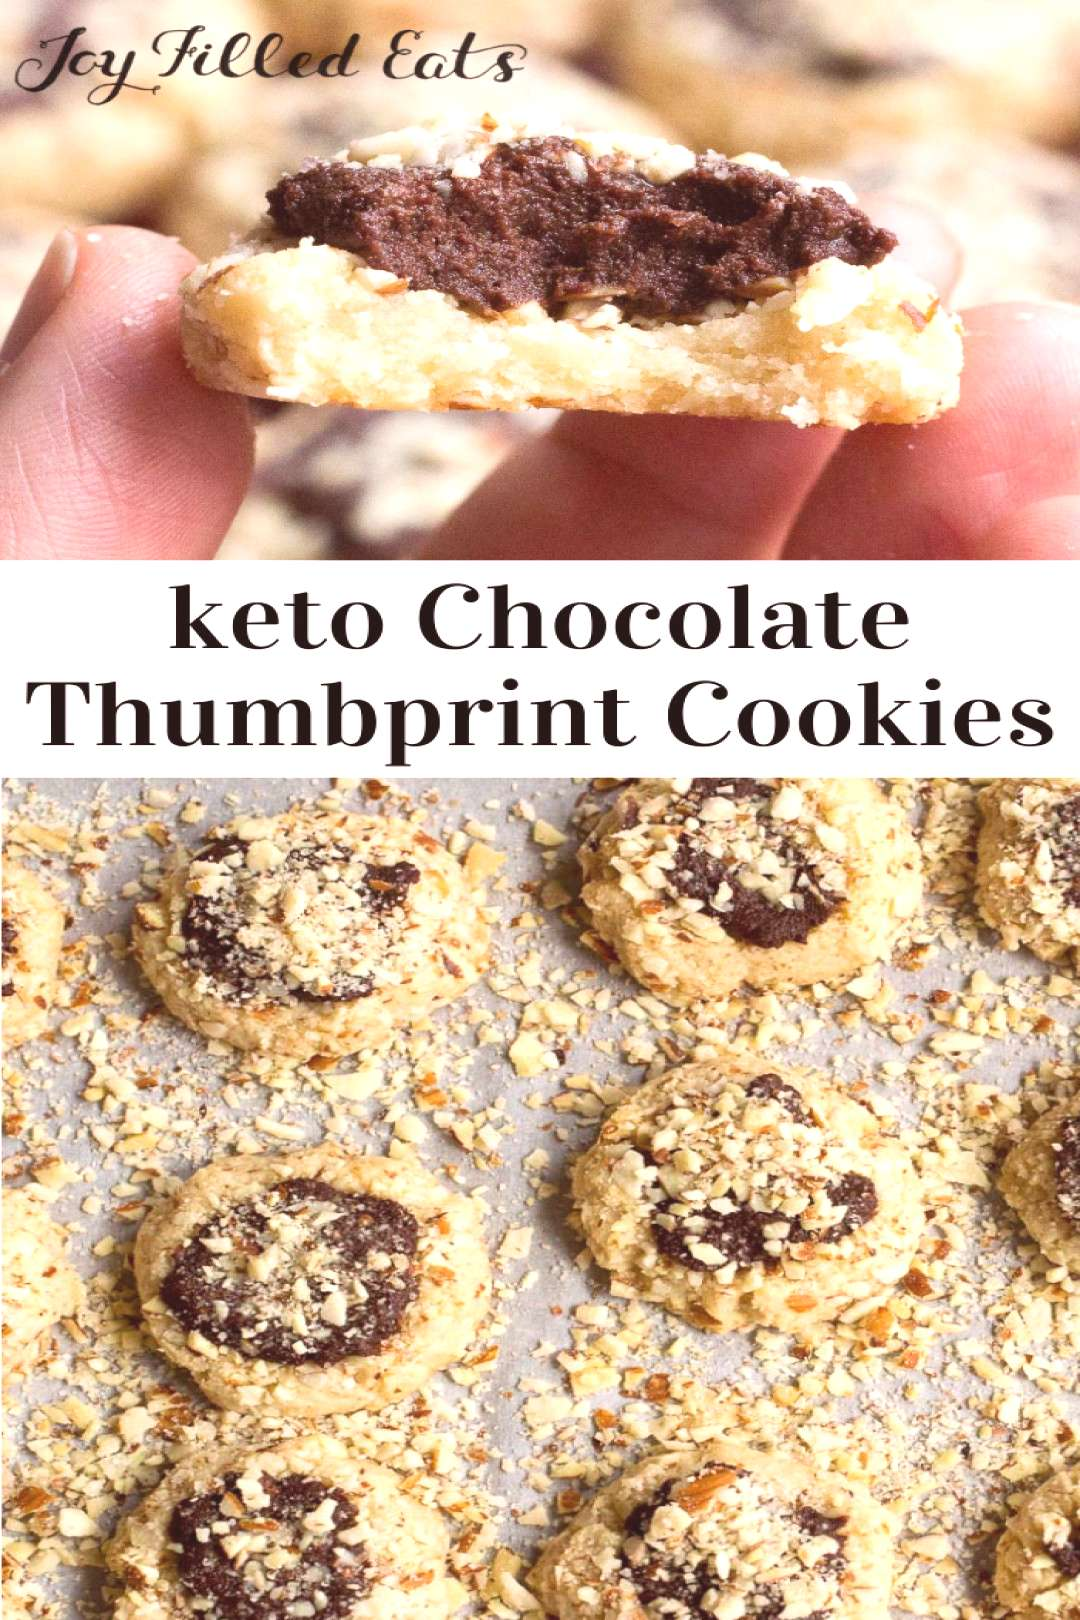 Keto Almond Crunch Chocolate Thumbprint Cookies - Low Carb, Sugar & Grain Free, THM S. These melt i